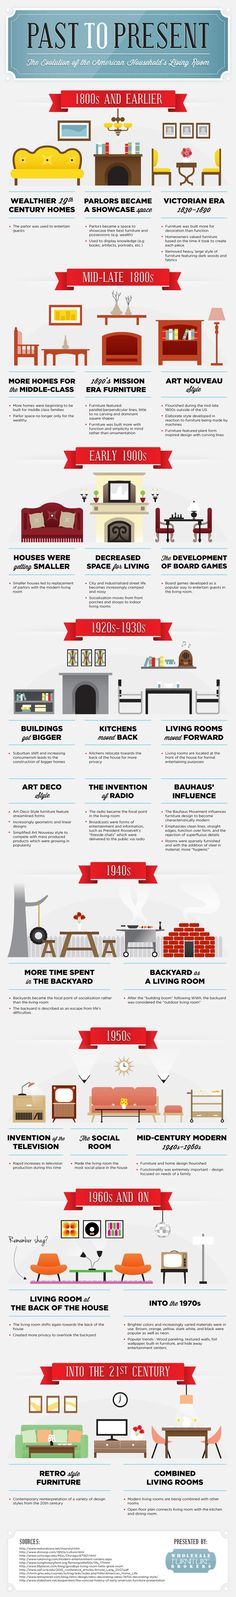 The Evolution Of The American Household S Living Room Infographic - pinupi love to share Web Design, Tool Design, House Design, Residential Architecture, Interior Architecture, American Retro, Interior Design History, American Houses, Retro Furniture